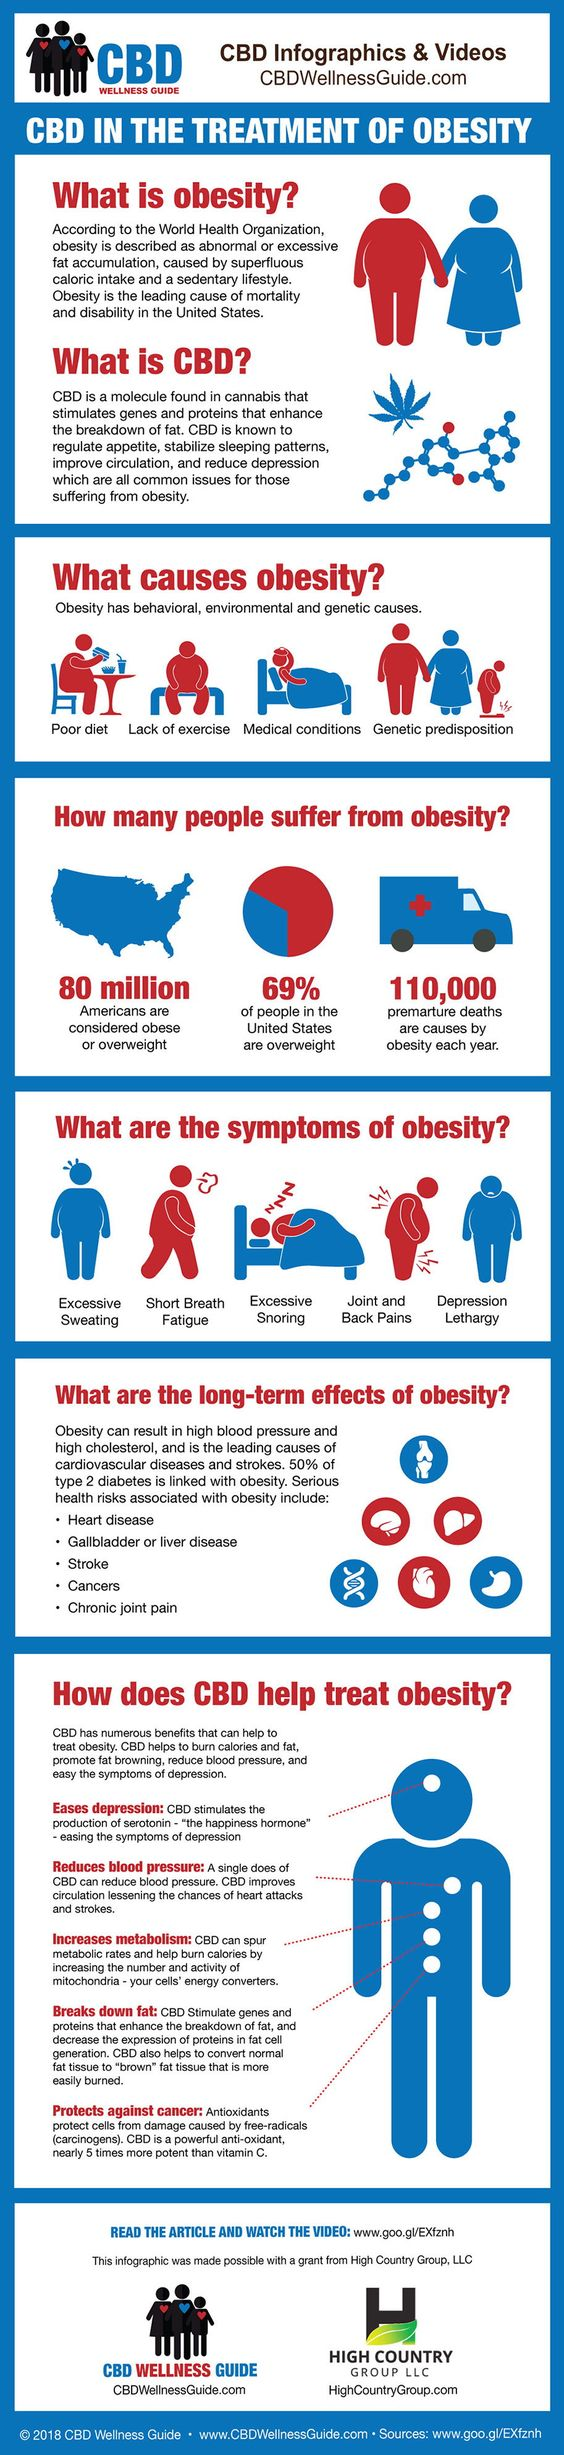 CBD in the treatment of Obesity